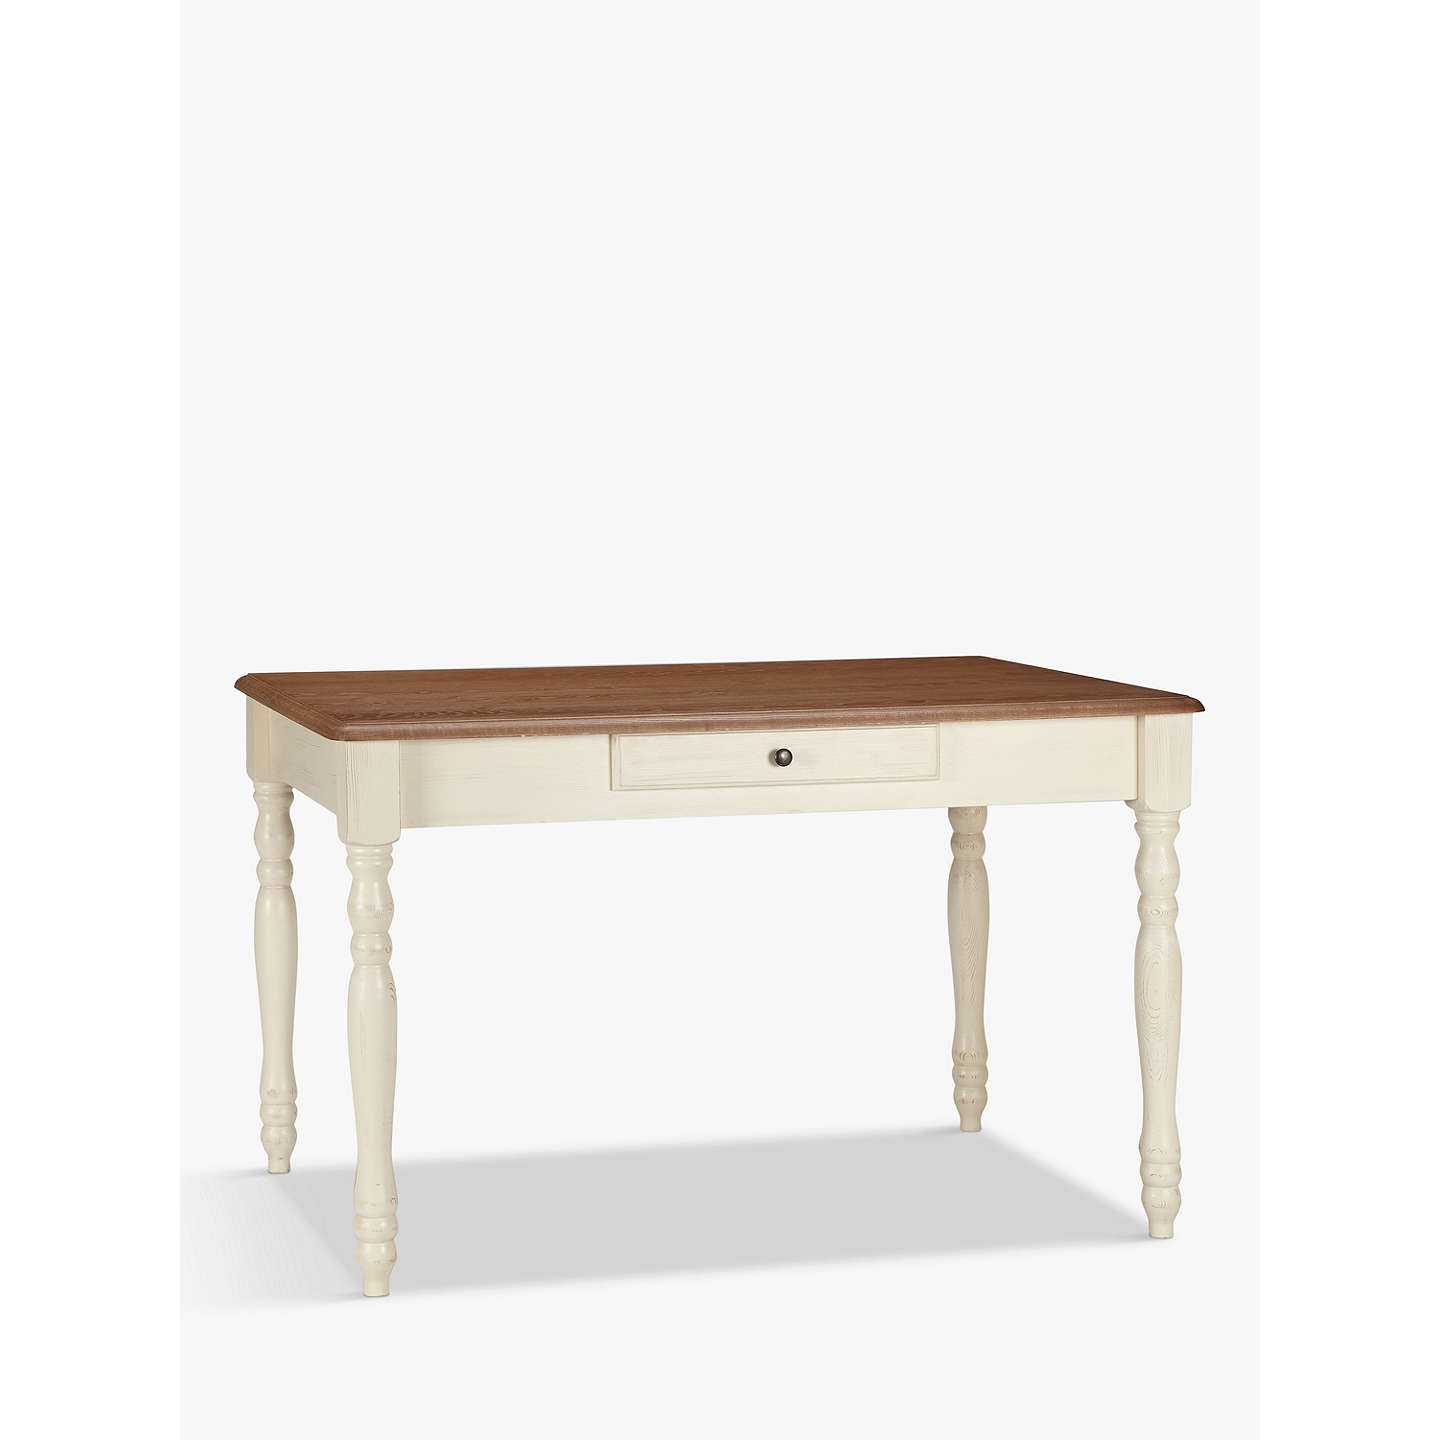 John lewis firenze 6 seater dining table at john lewis for 6 seater dining table